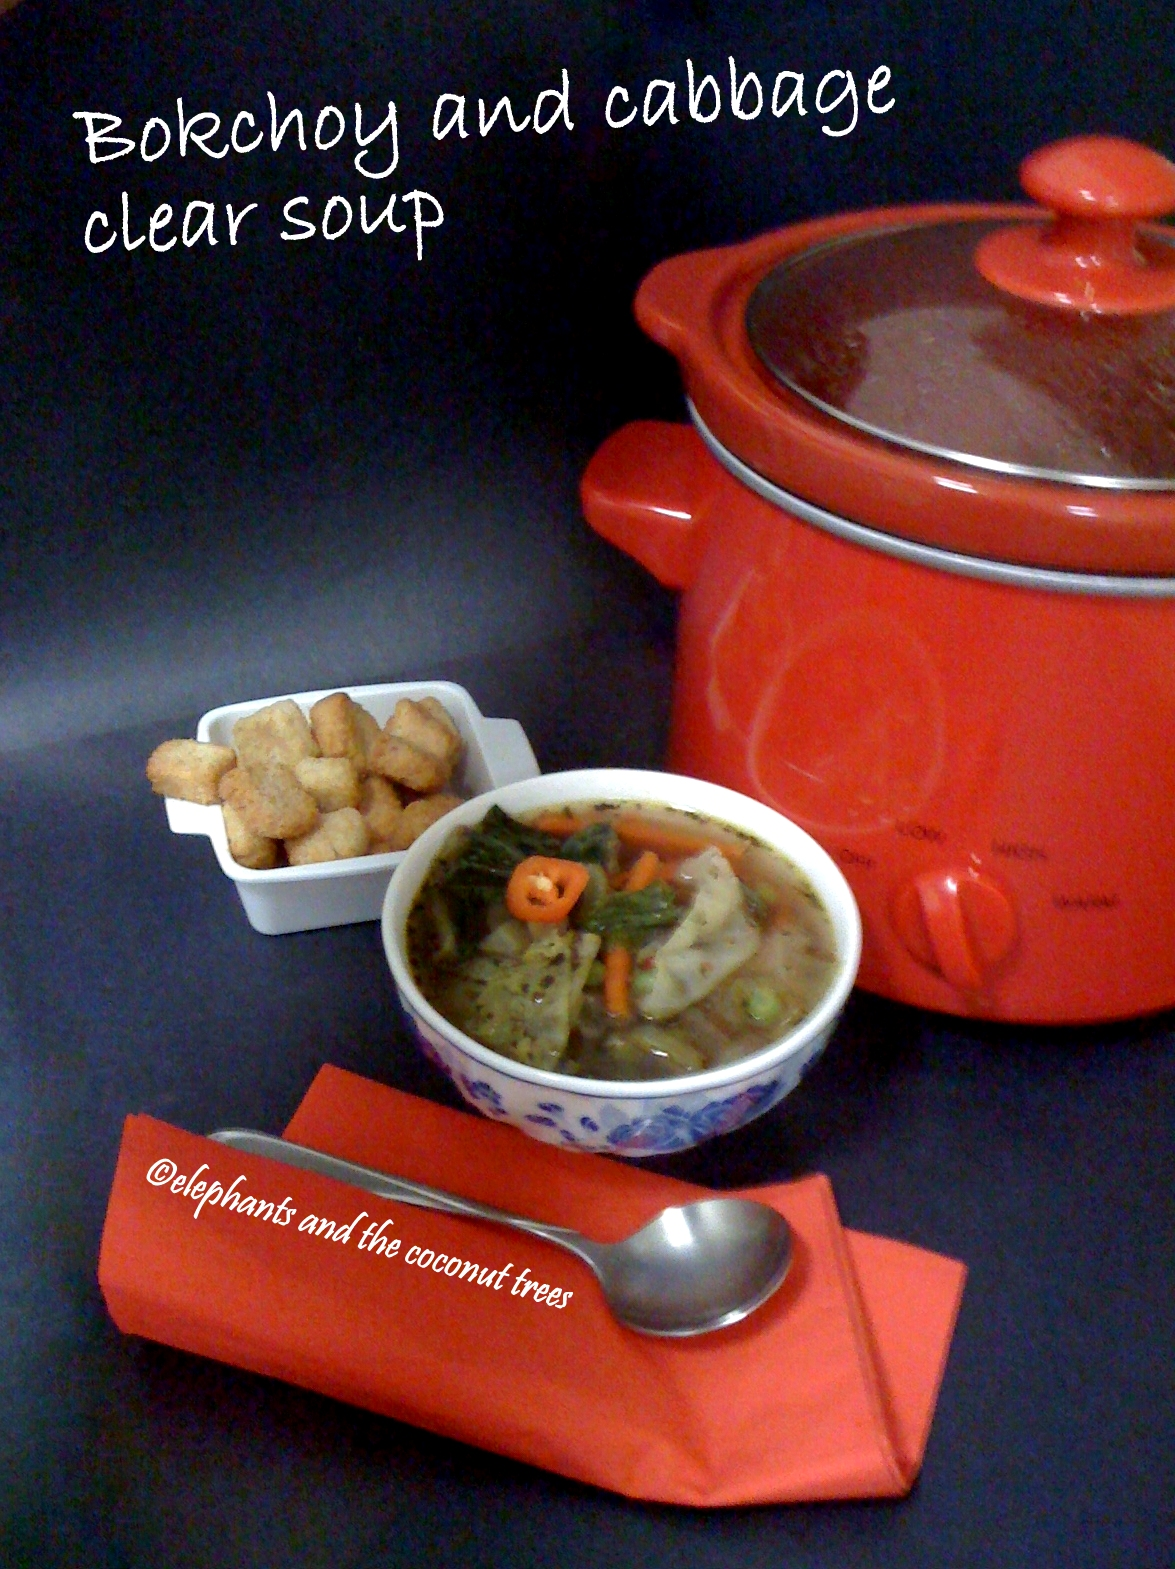 ... choy and cabbage clear soup / Soup for the sick / Low cal winter soup